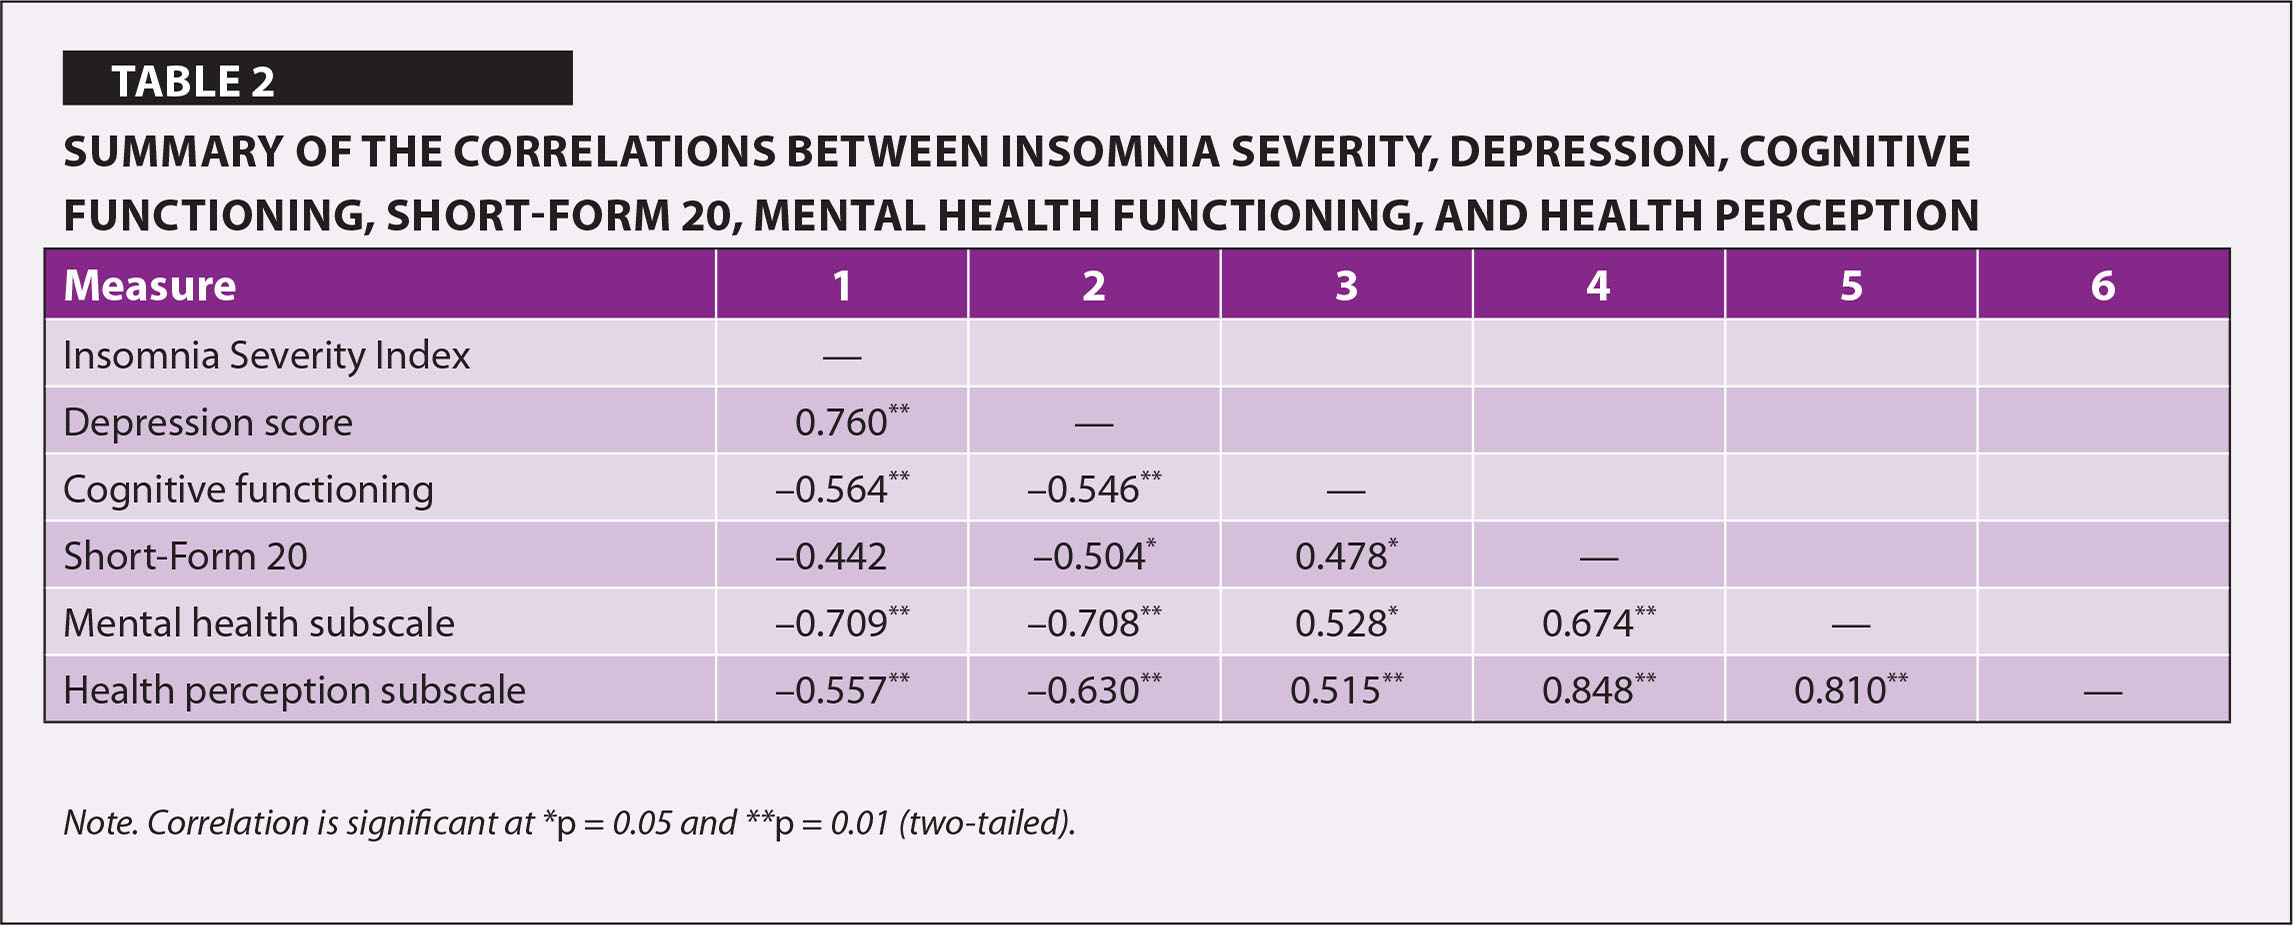 Summary of the Correlations Between Insomnia Severity, Depression, Cognitive Functioning, Short-Form 20, Mental Health Functioning, and Health Perception